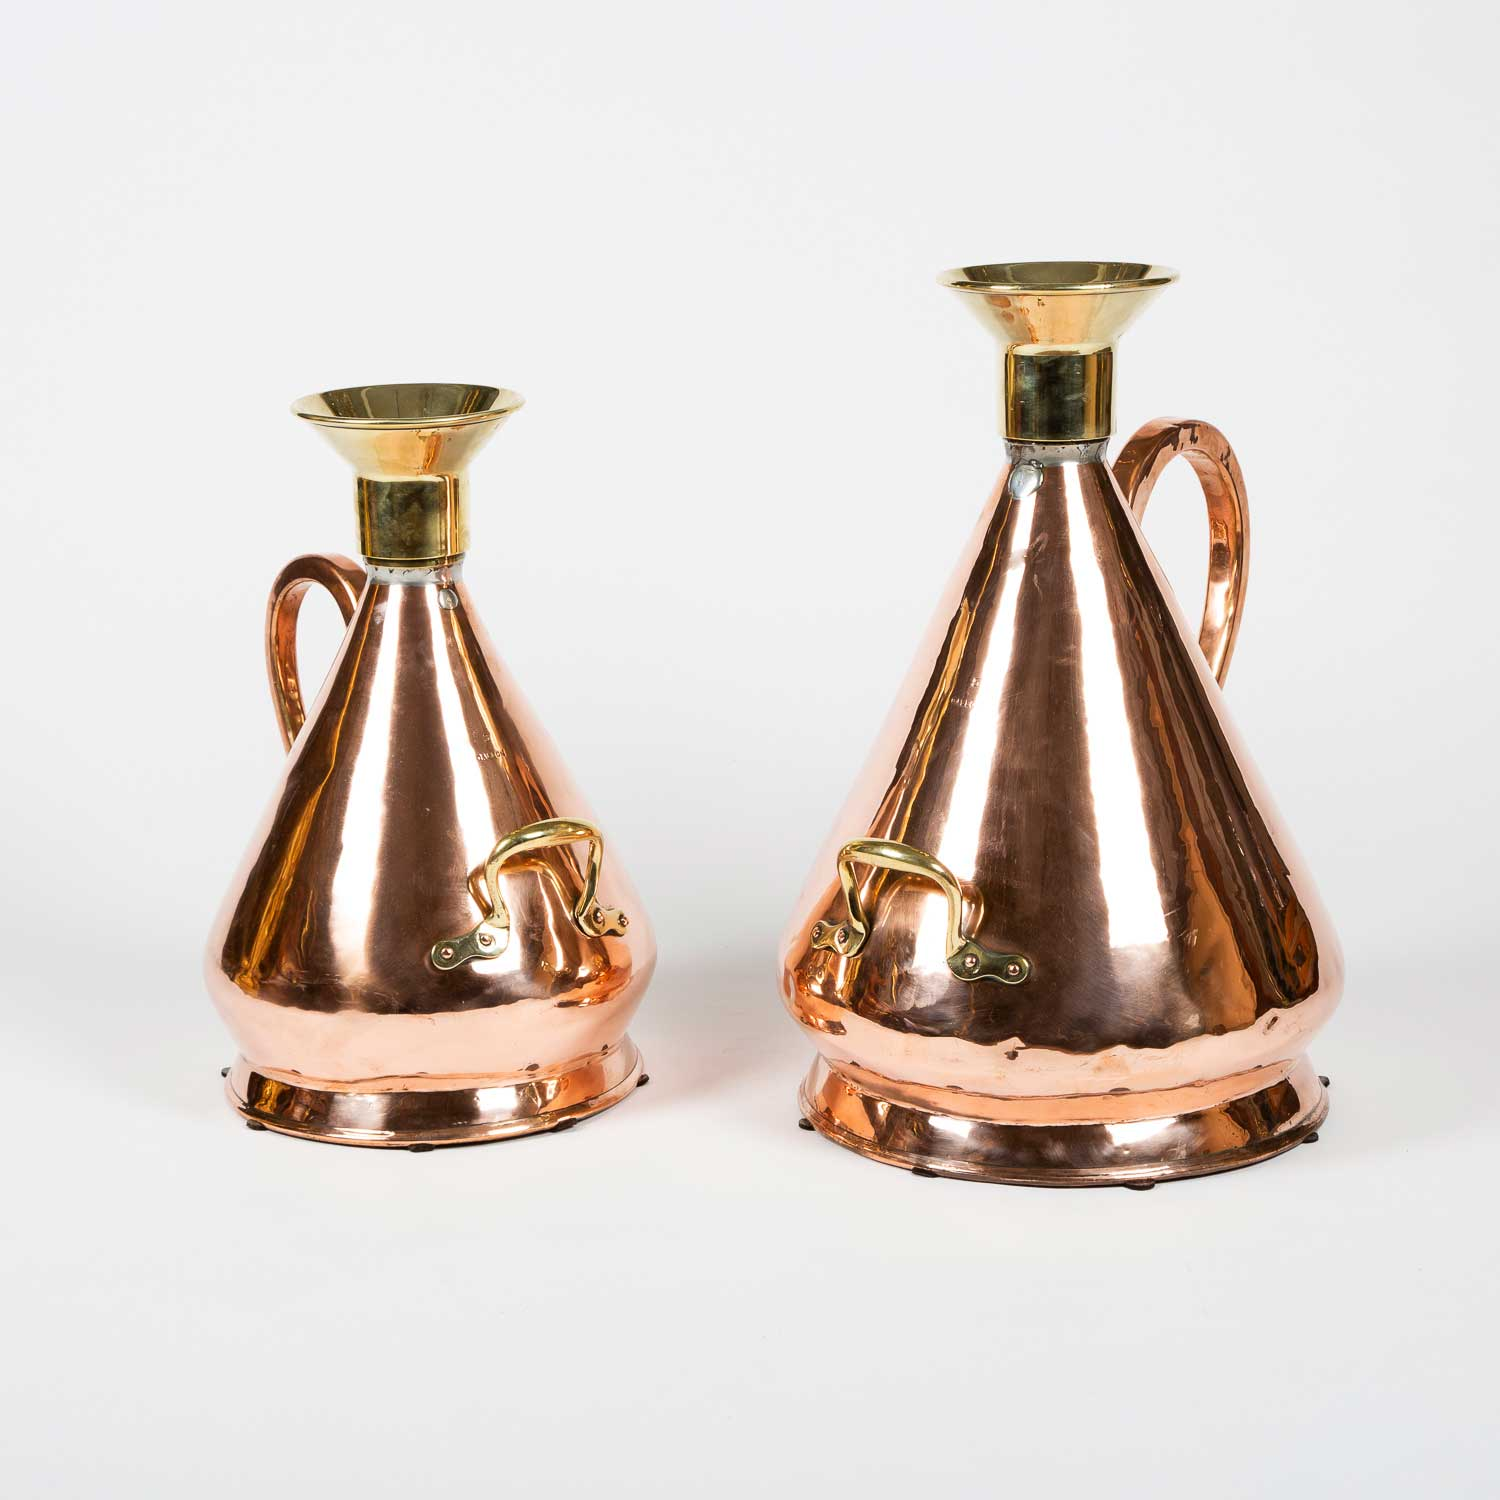 Brass conical standard measures